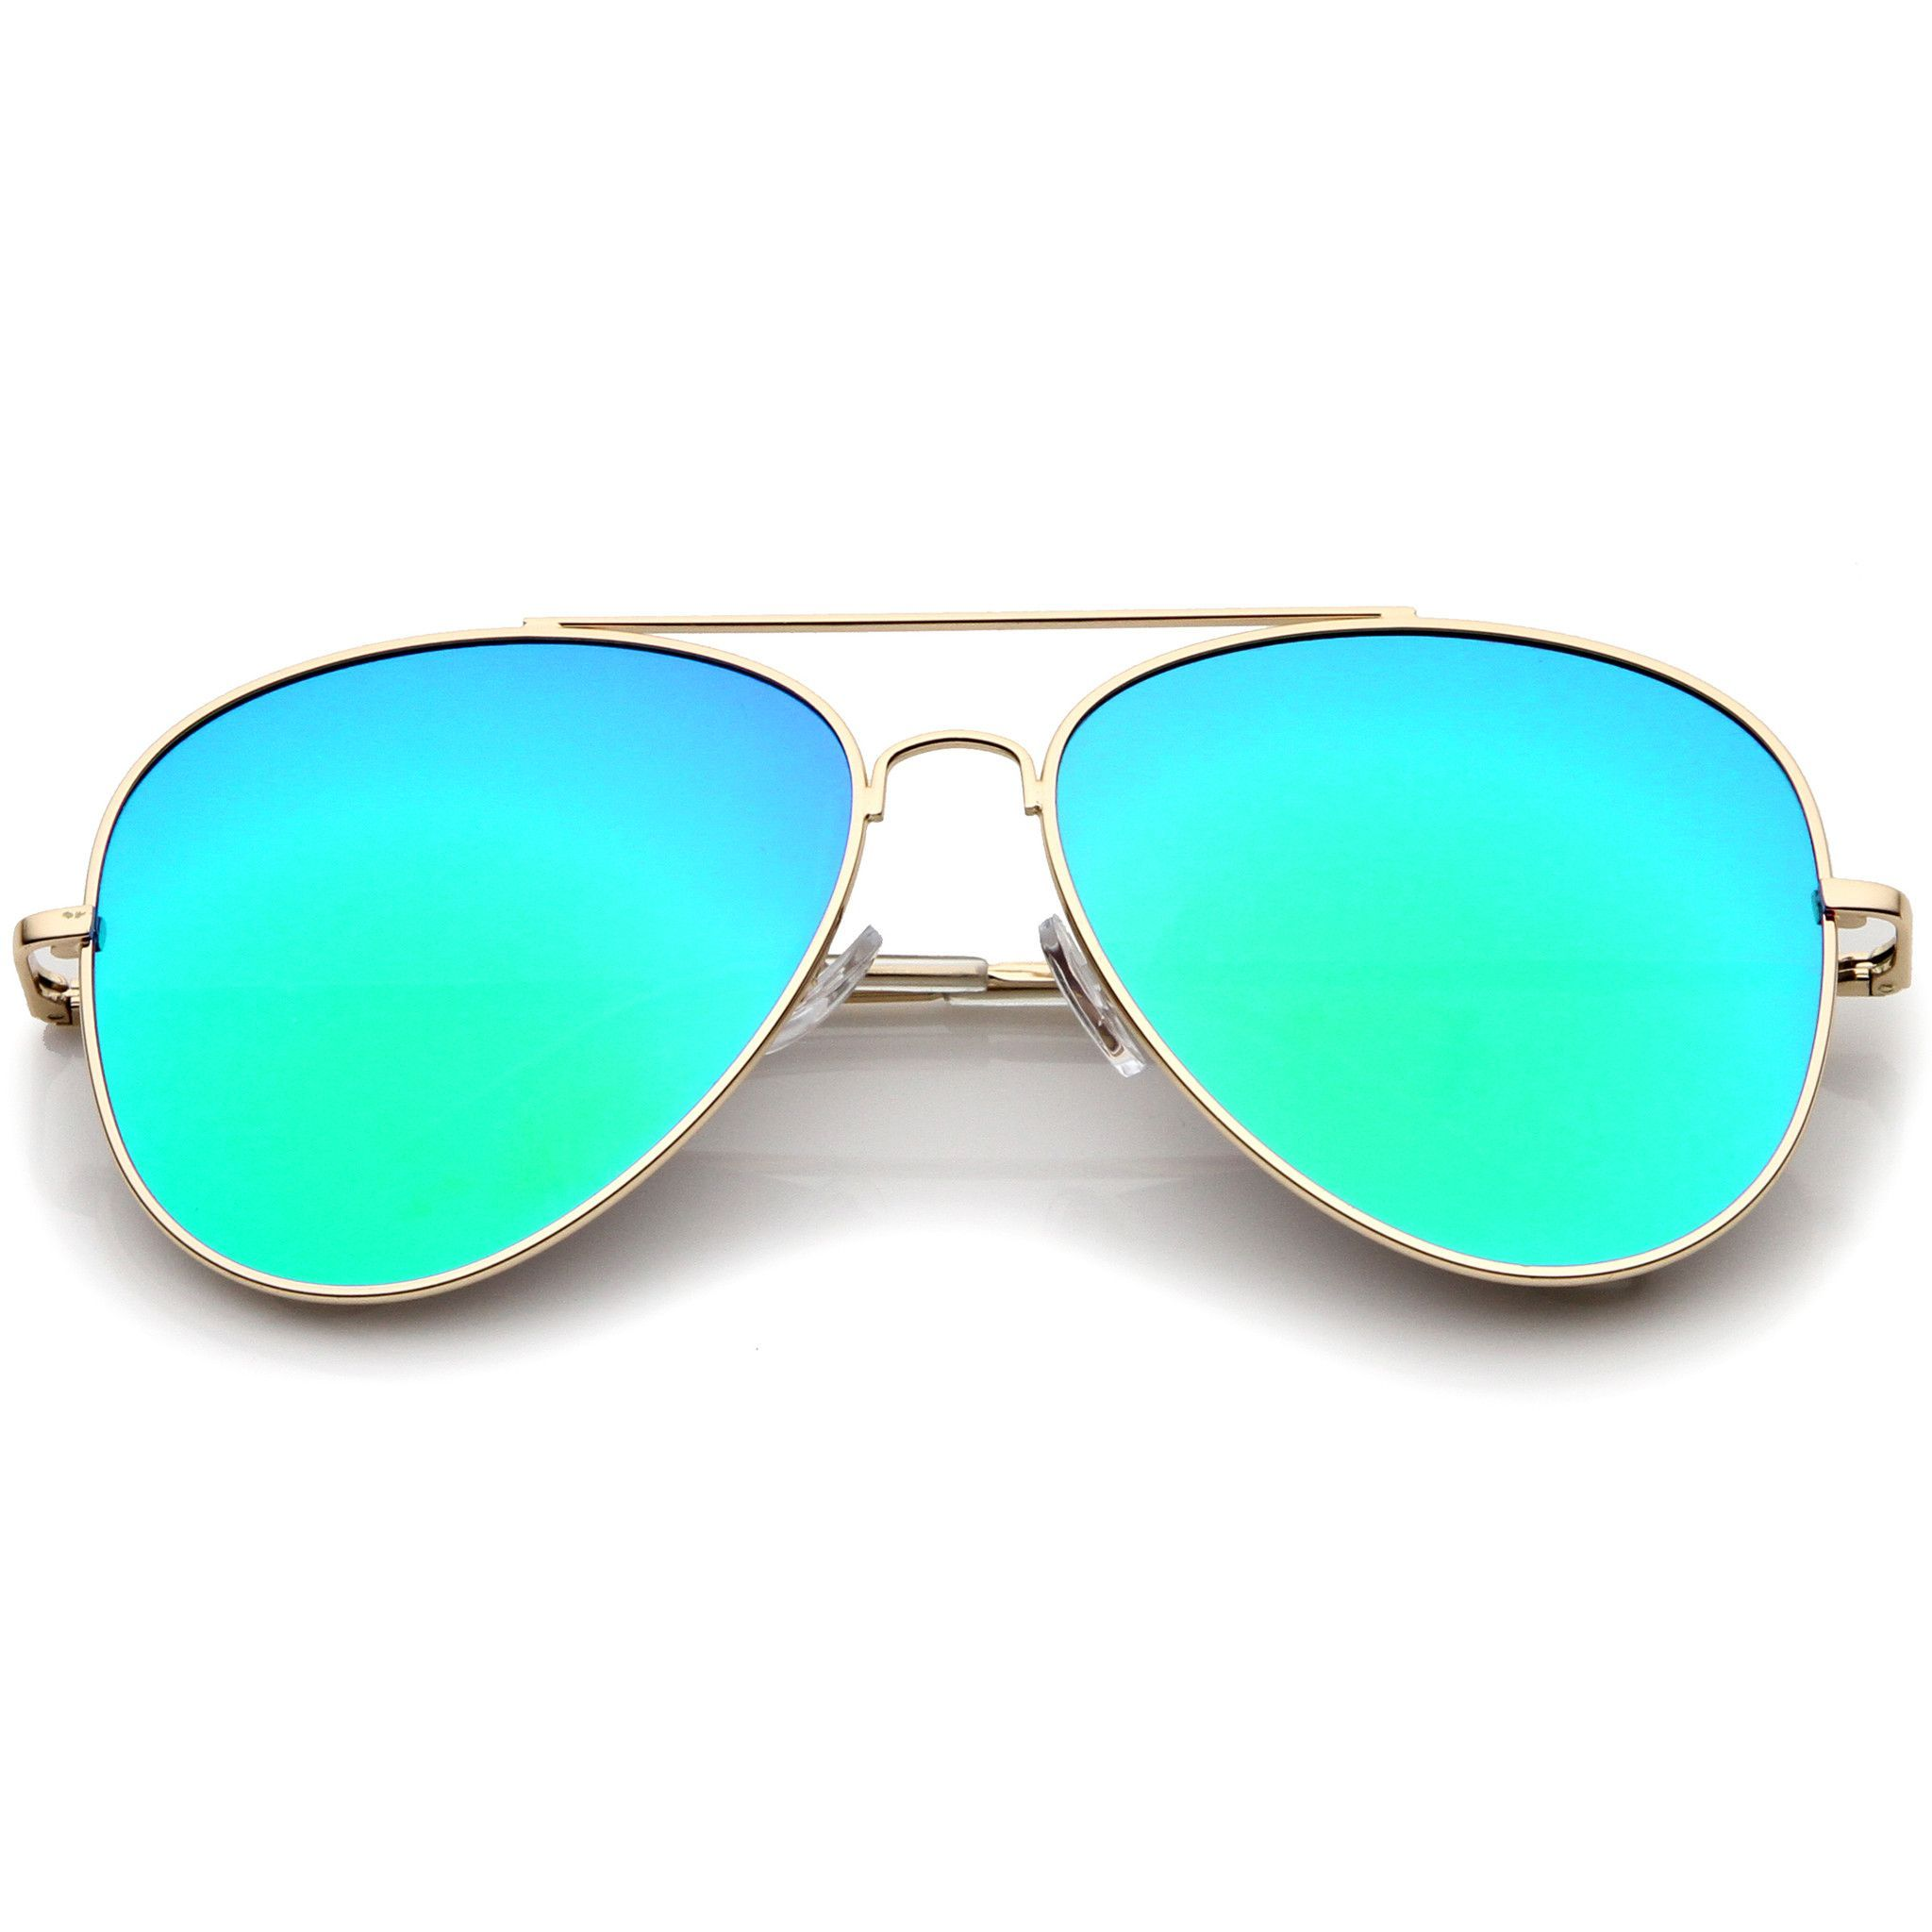 92c8bef437 Large Flat Front Mirrored Lens Aviator Sunglasses A485  https://bellanblue.com Summer